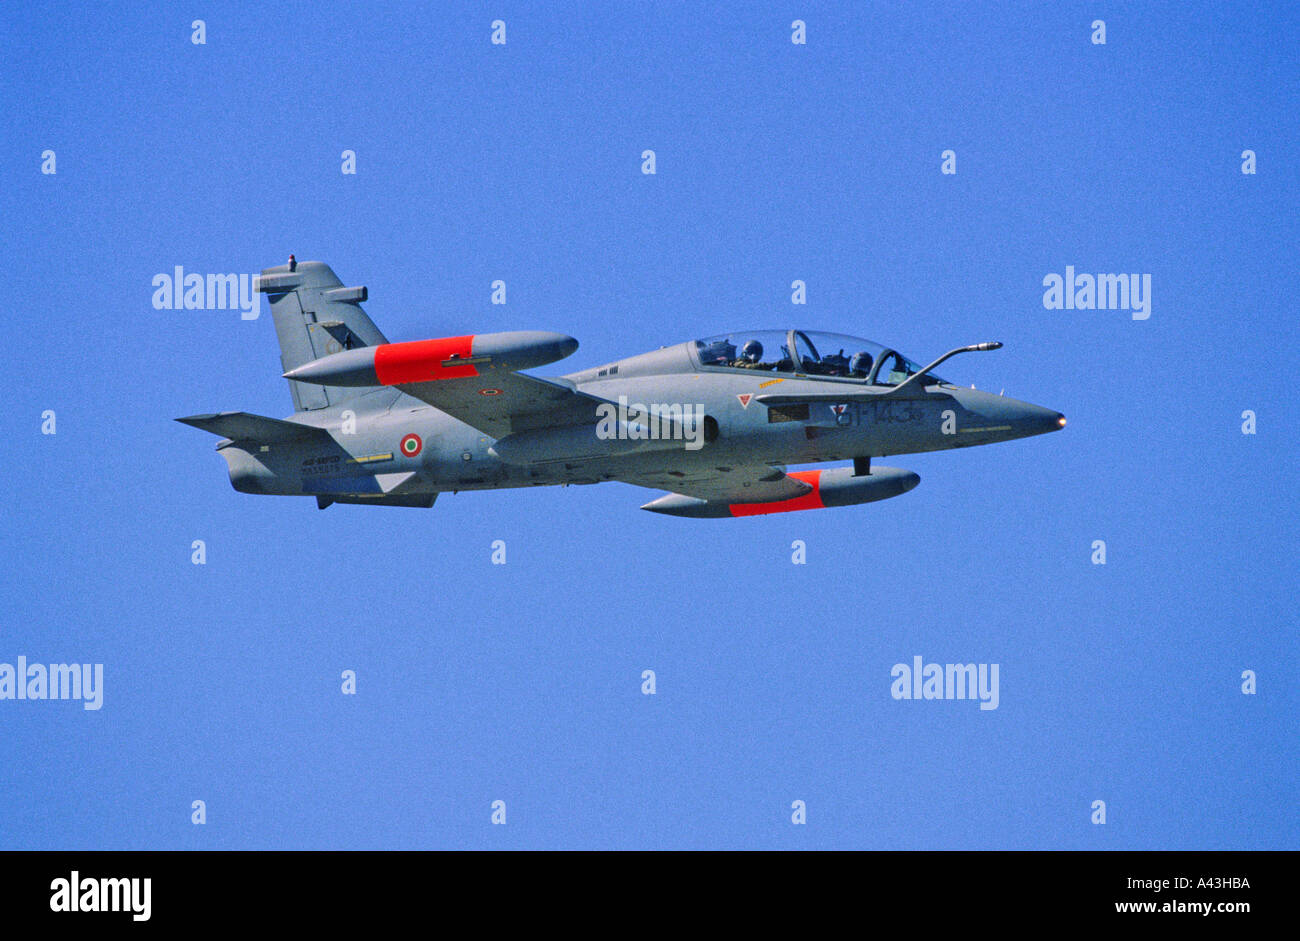 Alenia Aernacchi S M346 Trainer Is Based On The Yak 130 Photo By Aerchi